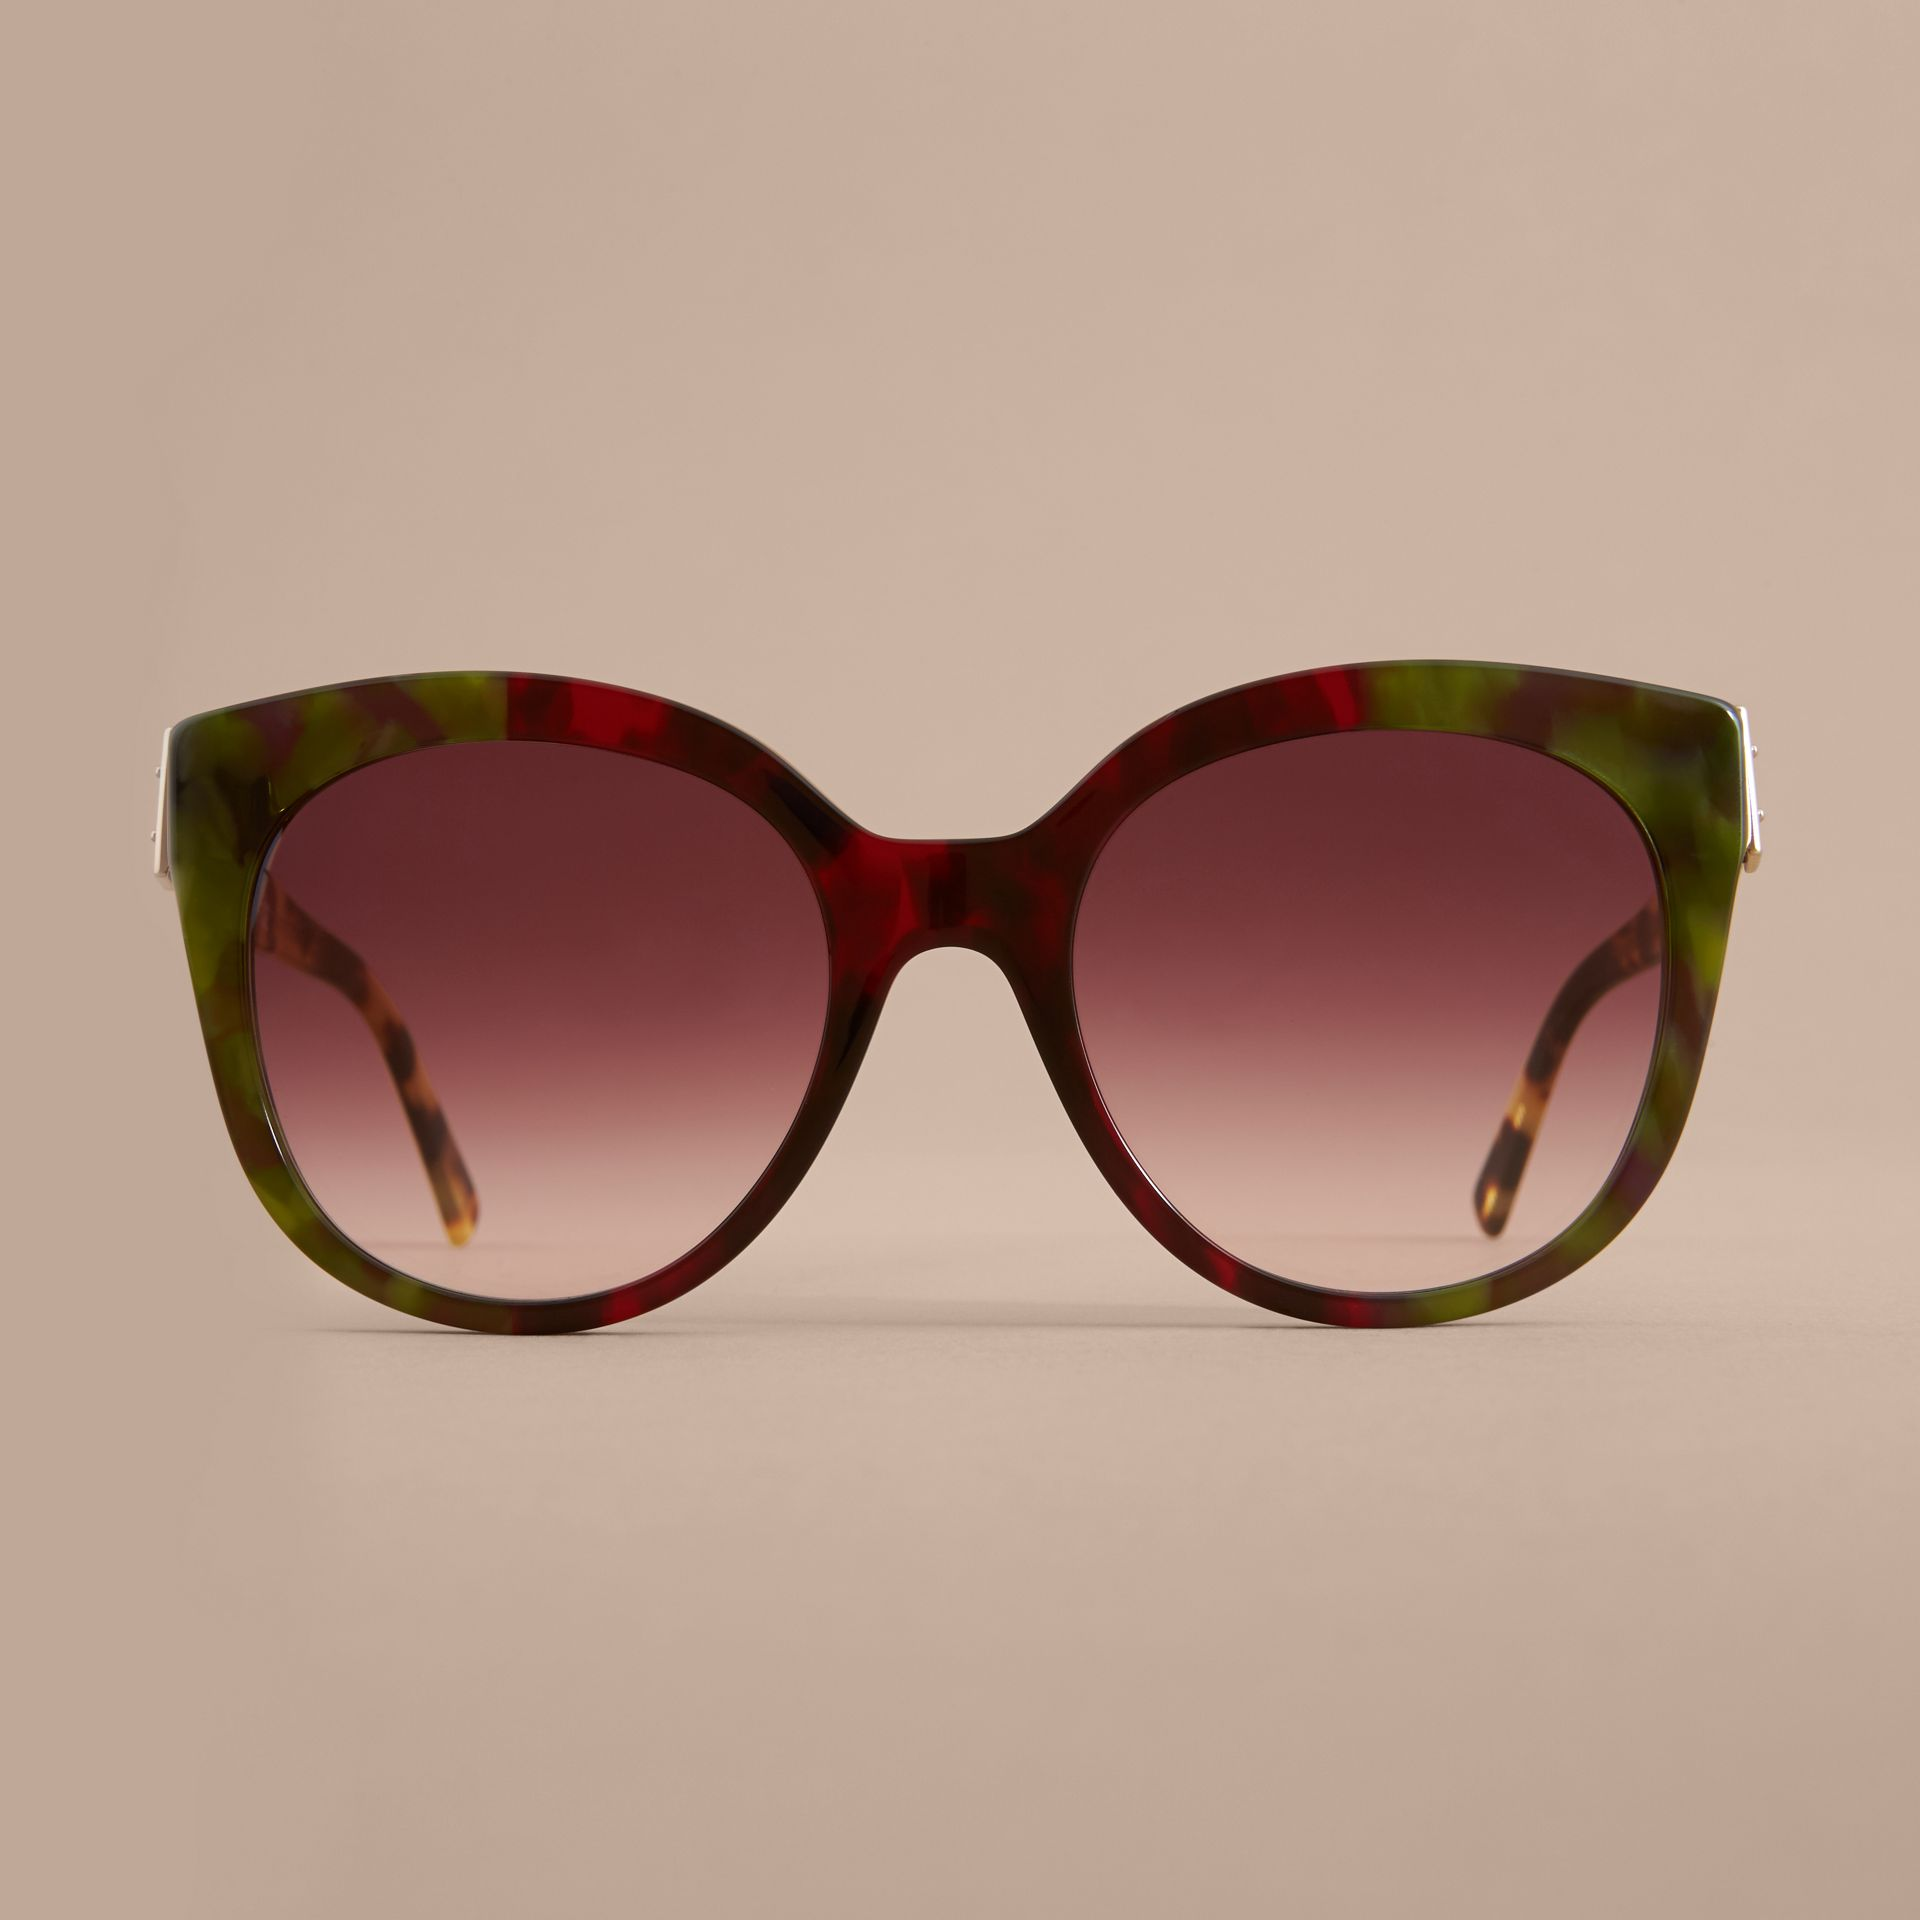 Buckle Detail Cat-eye Frame Sunglasses in Cardinal Red - Women | Burberry United Kingdom - gallery image 2